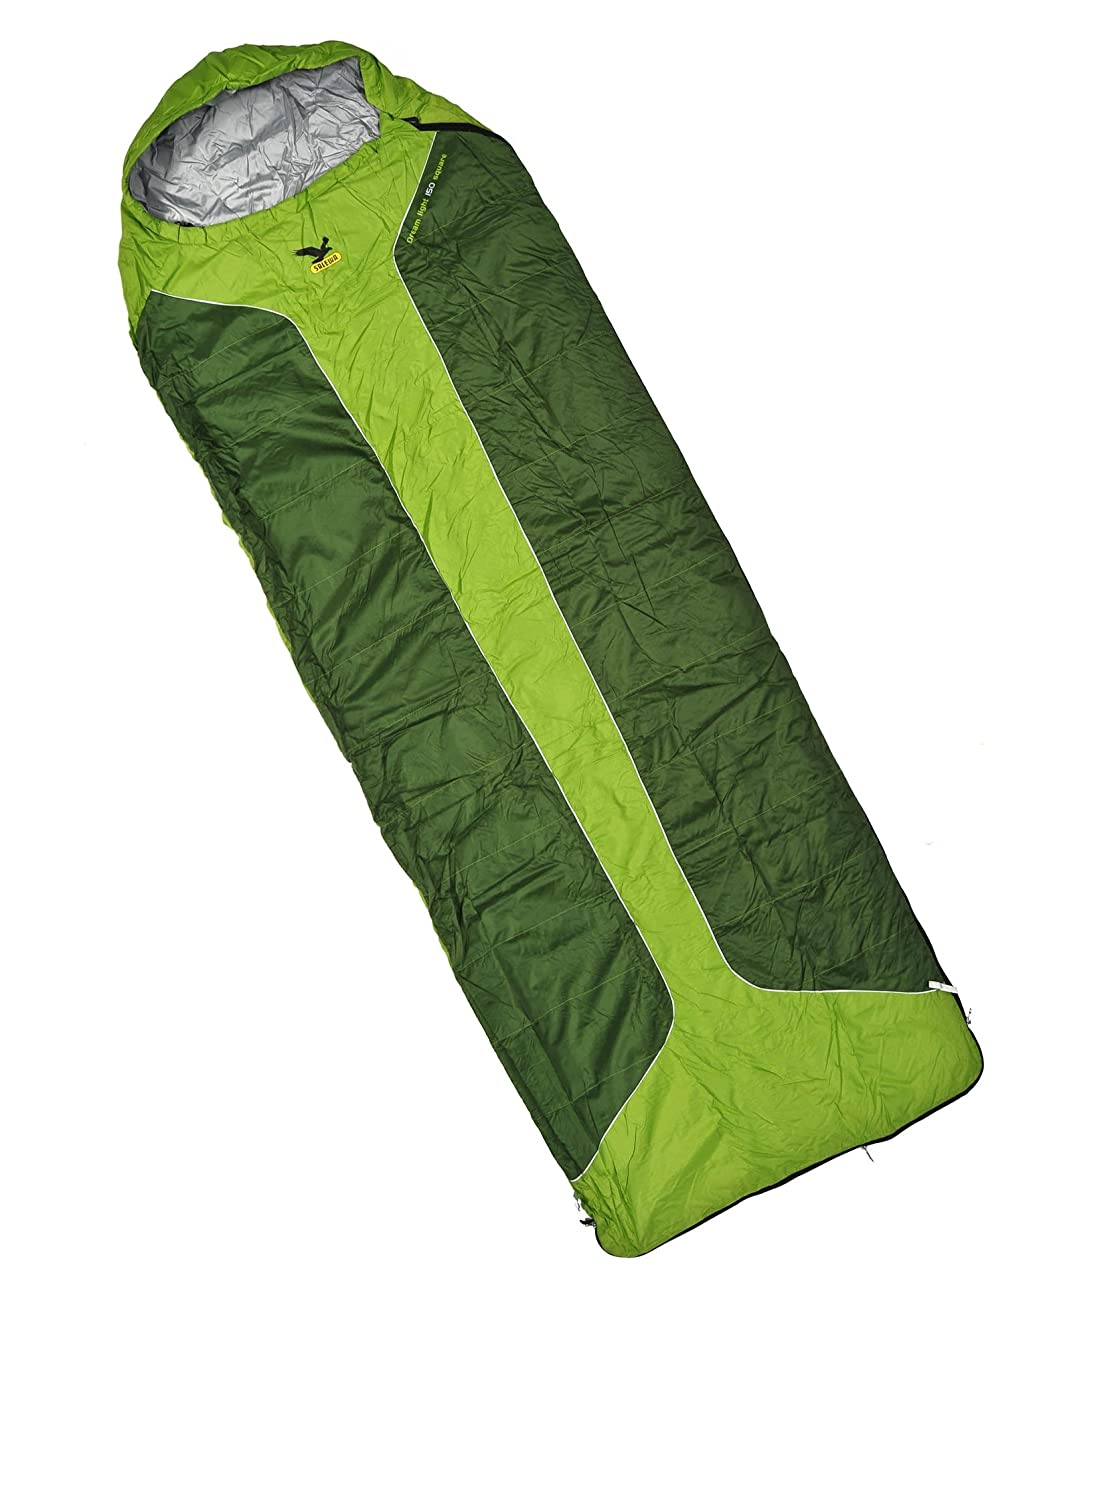 SALEWA Dream Light 150 Square Sb Saco De Dormir +8° Verde Derecha: Amazon.es: Deportes y aire libre